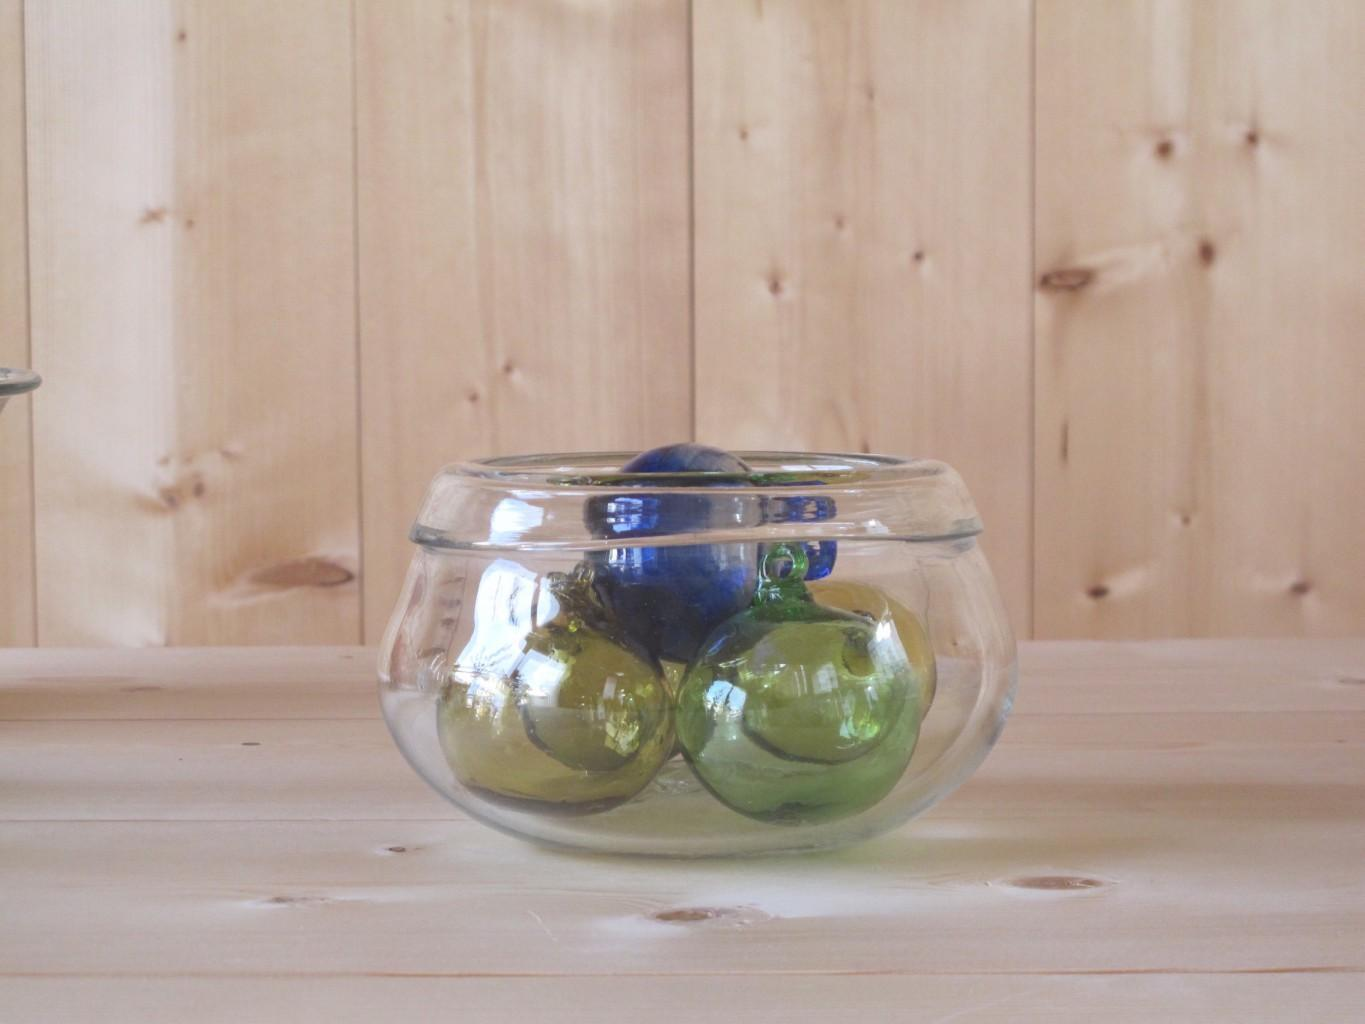 Salad Bowl Small, Boules Blue, Olive, Green